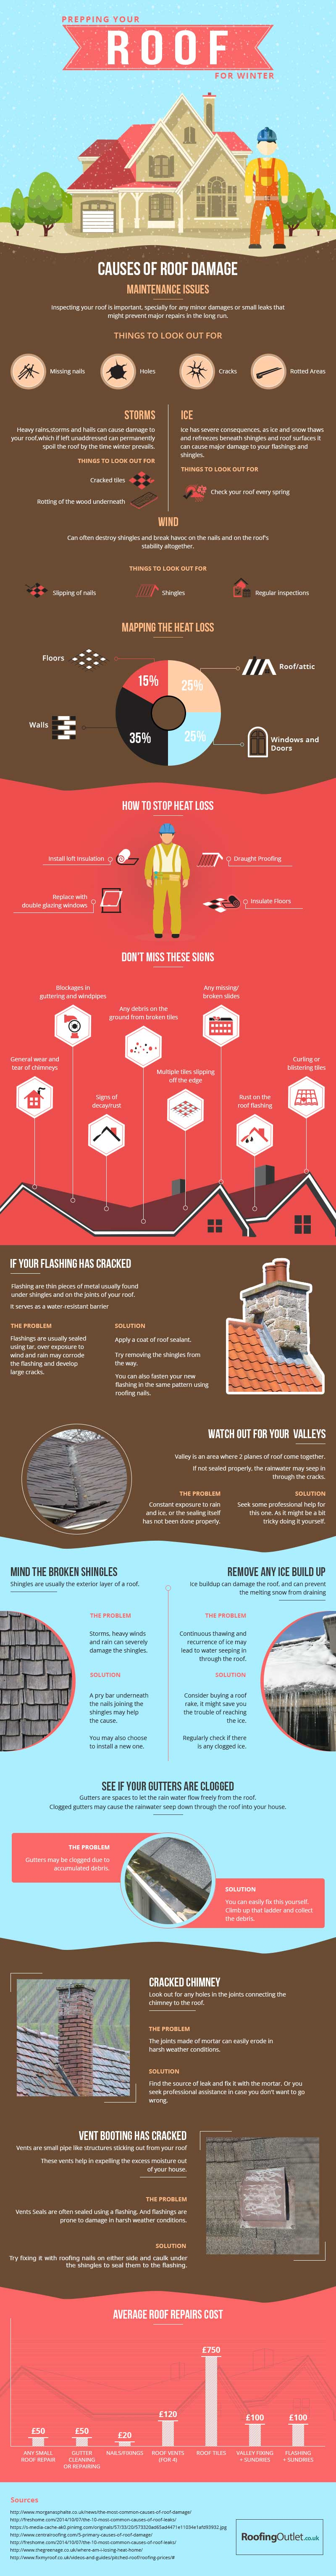 Prepping your roof infographic